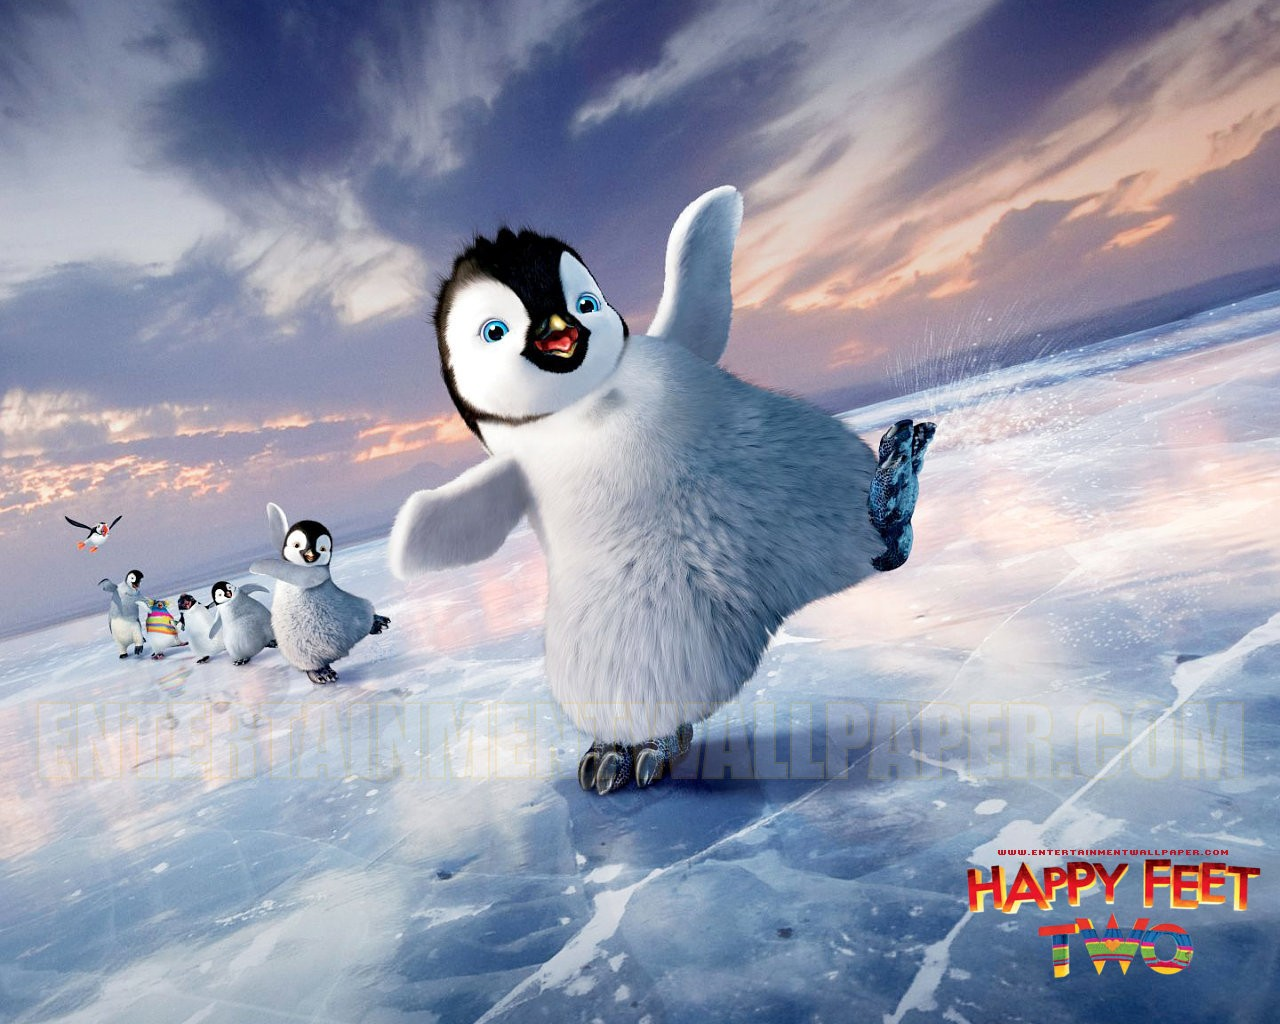 upcoming movies images happy feet too 2011 hd wallpaper